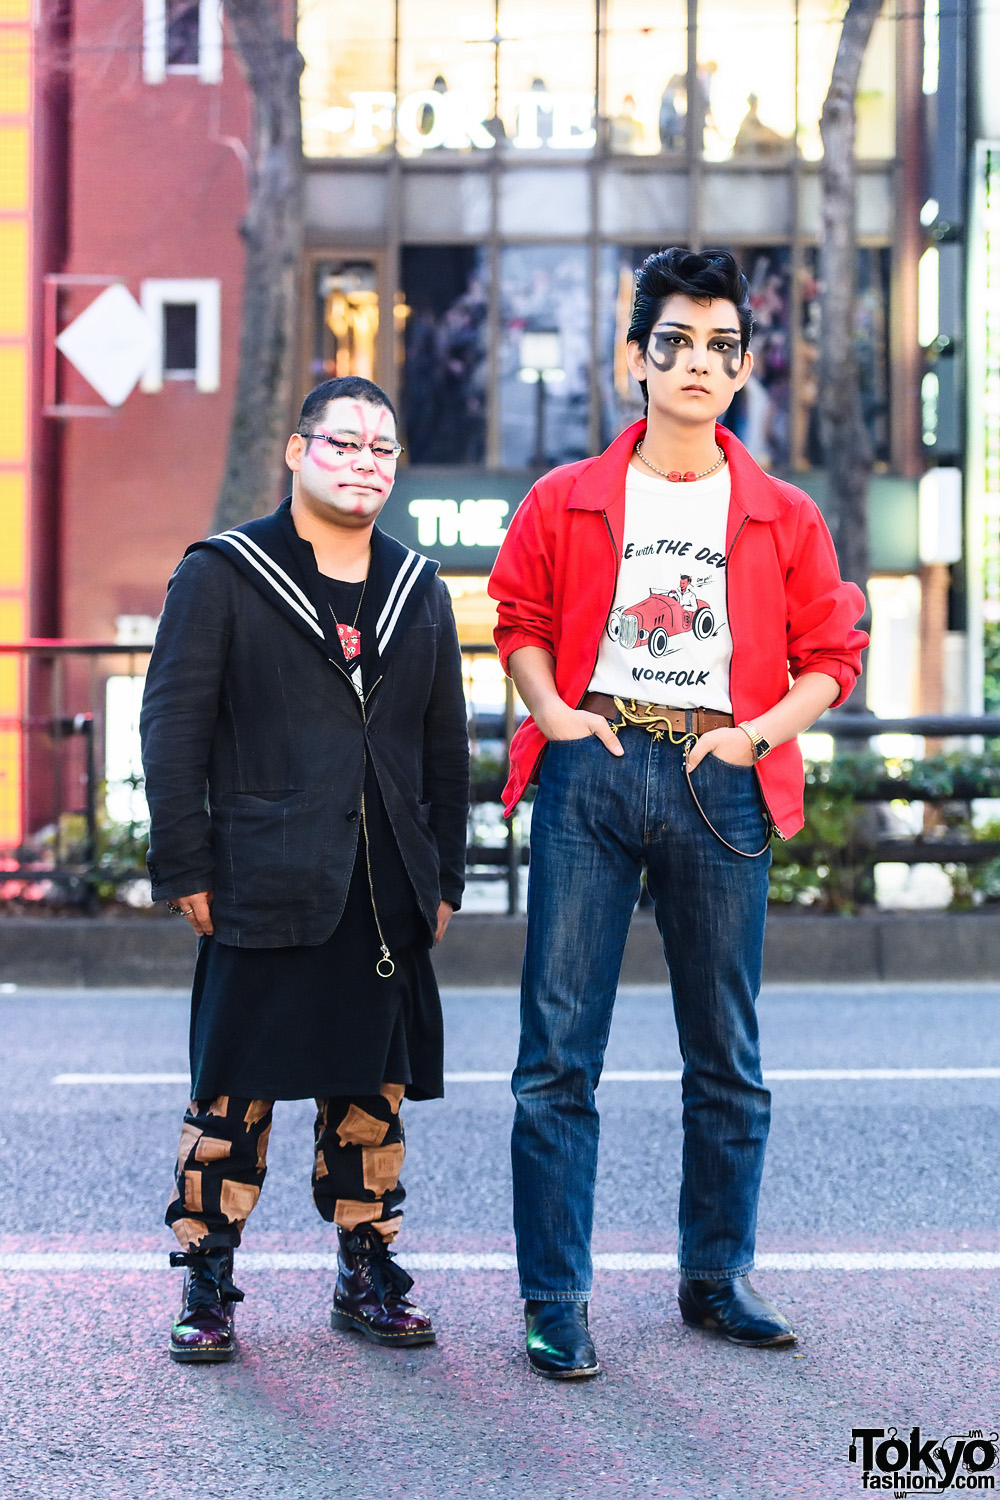 Tokyo Street Styles w/ Face Paint, Sailor Collar Jacket, Dry Bones T-Shirt, Tramp Jeans, Dice Lizard Belt, Purple Boots & Leather Boots